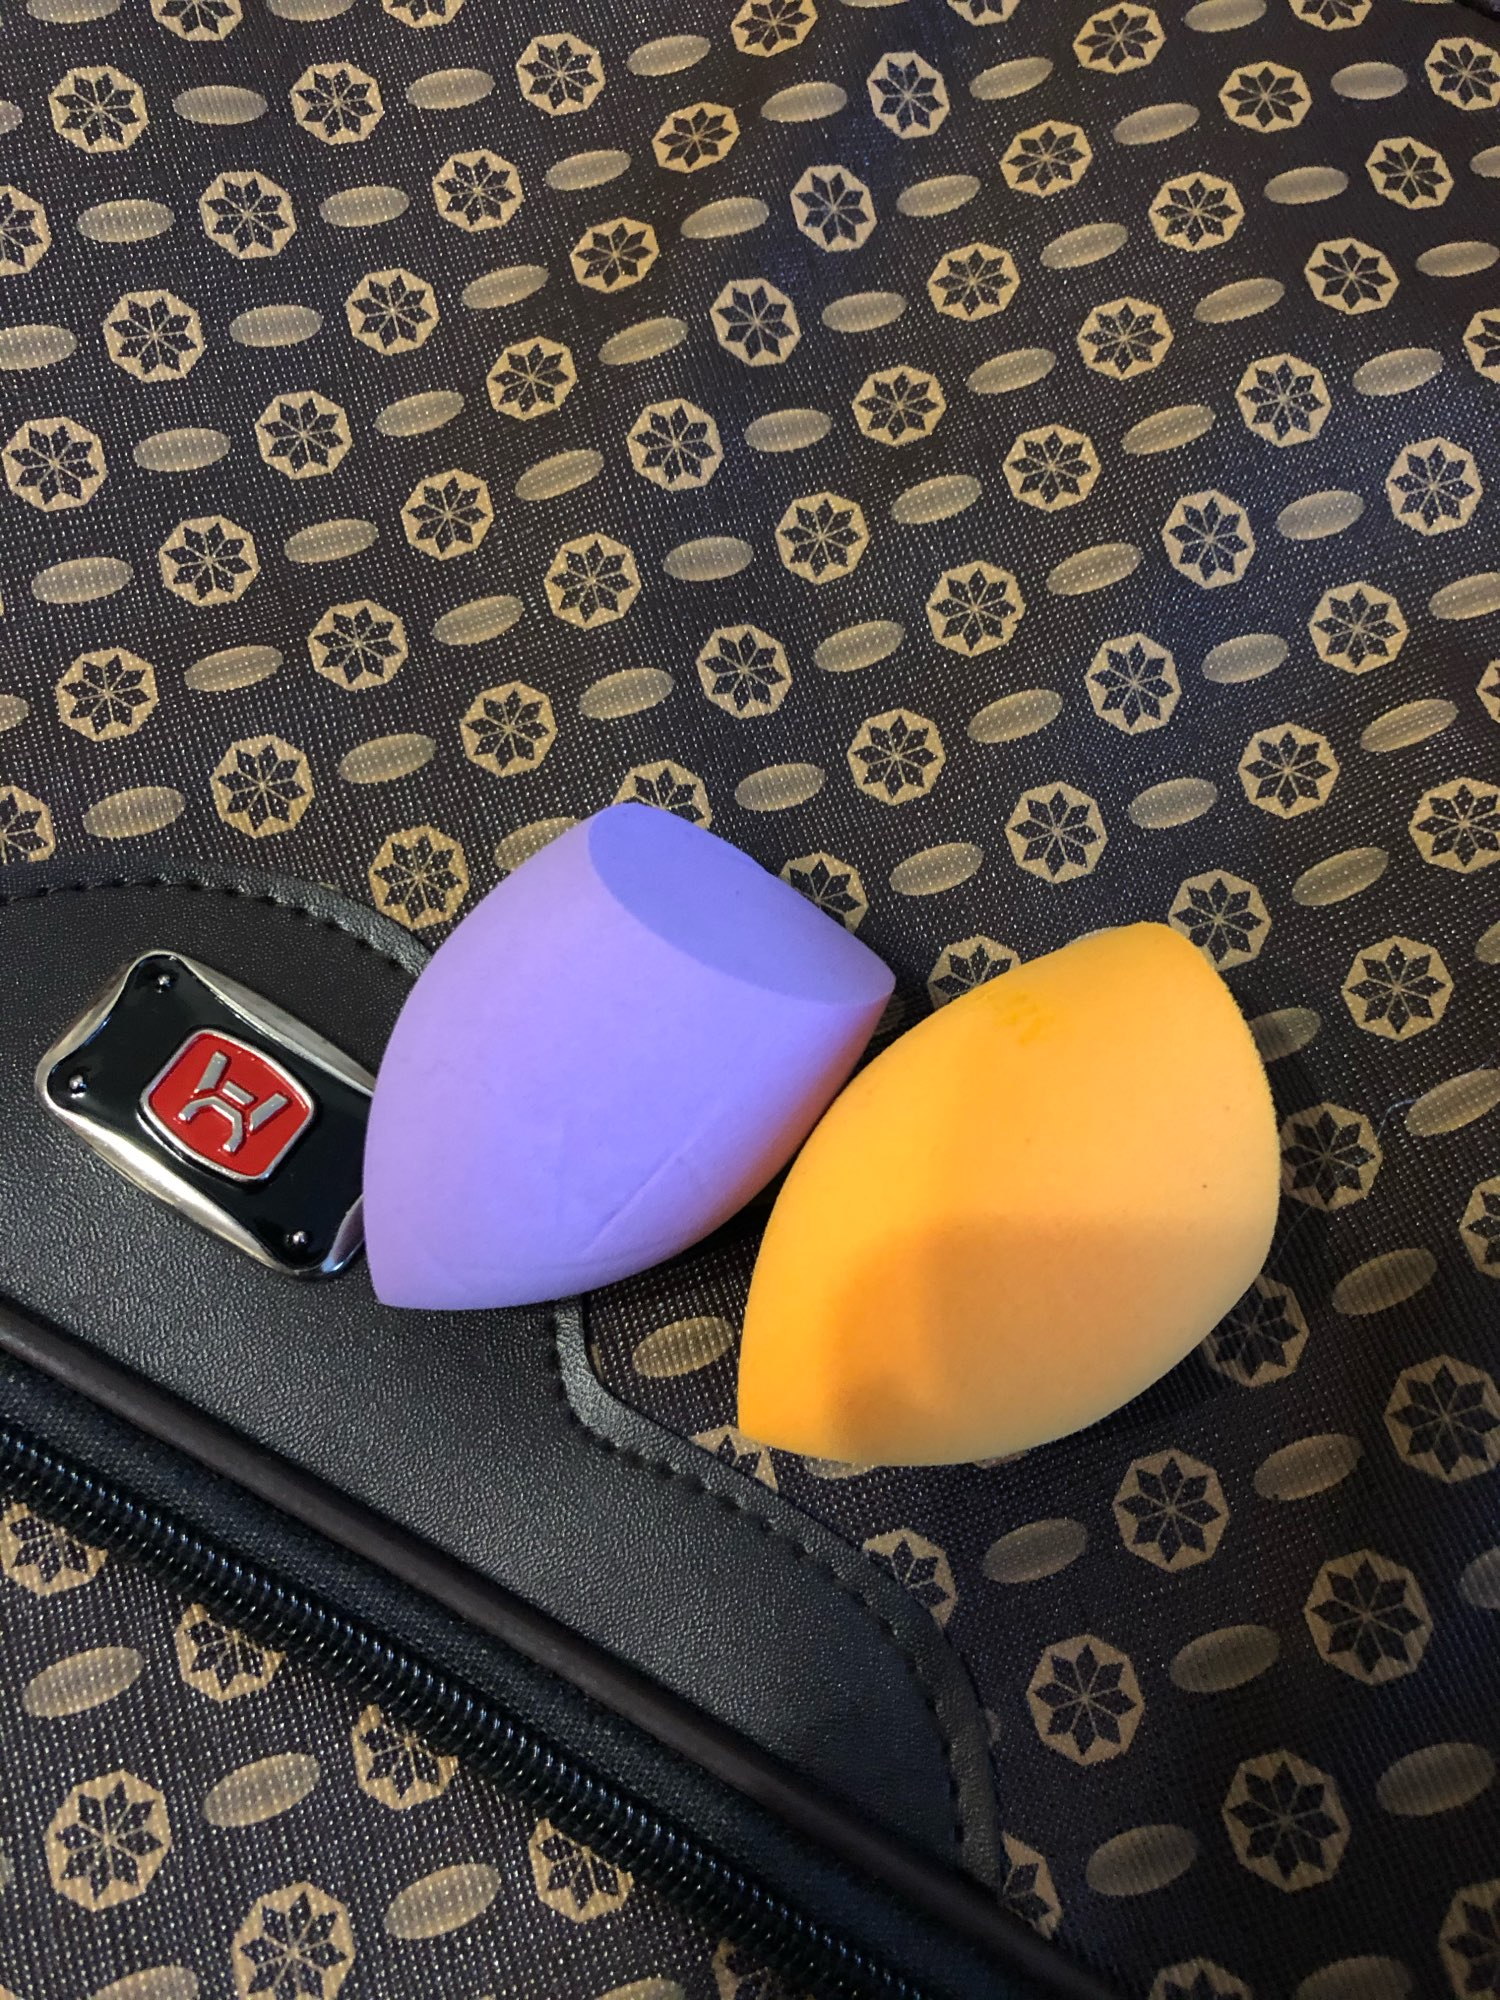 MsWing Makeup Sponge - Professional Cosmetic Sponge for face photo review